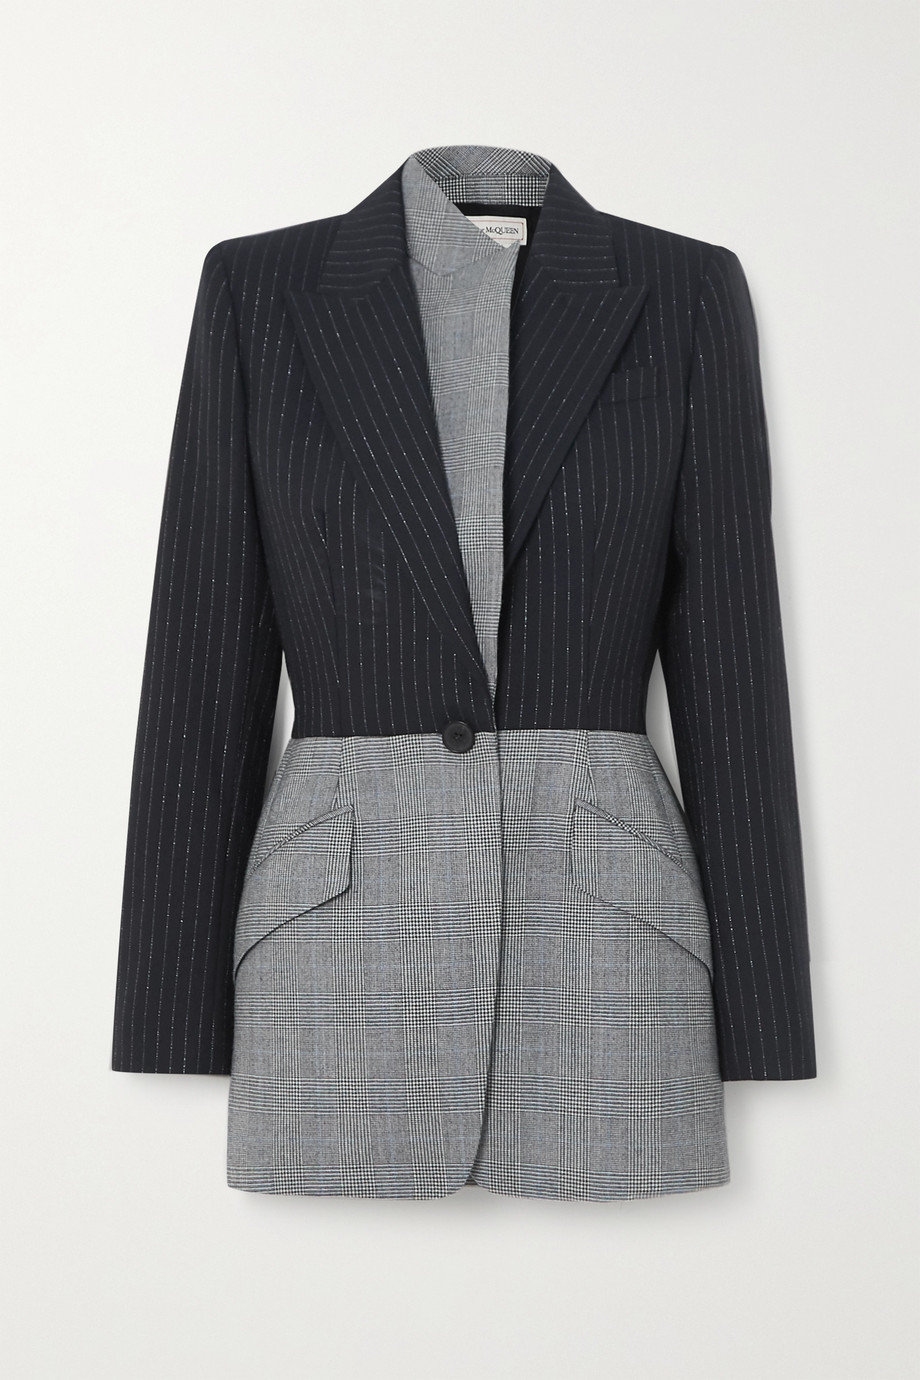 ALEXANDER MCQUEEN Asymmetric pinstriped and Prince of Wales checked wool blazer